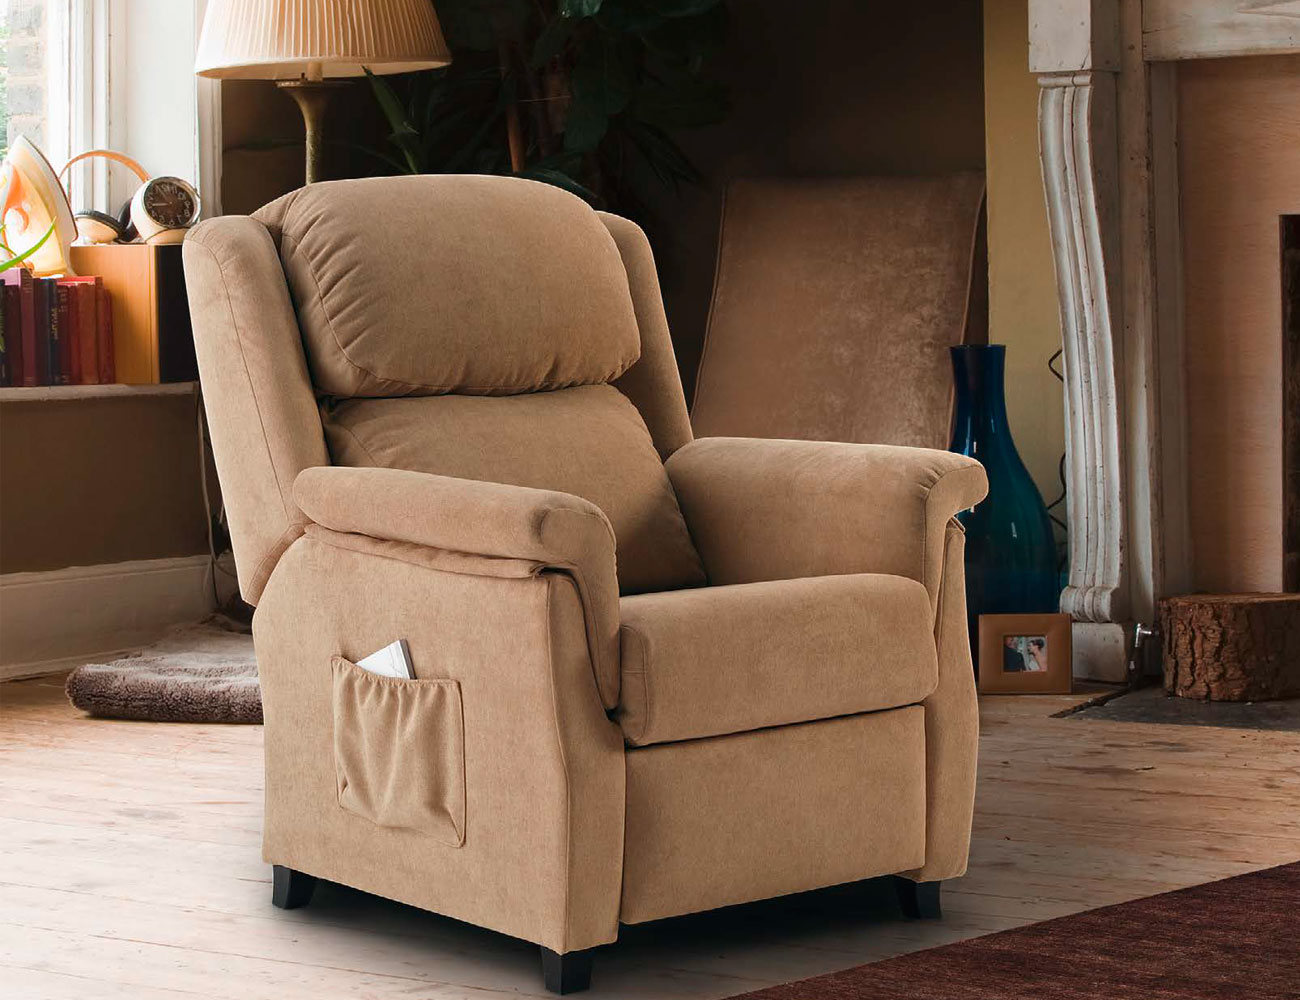 Sillon relax manual bianca 13